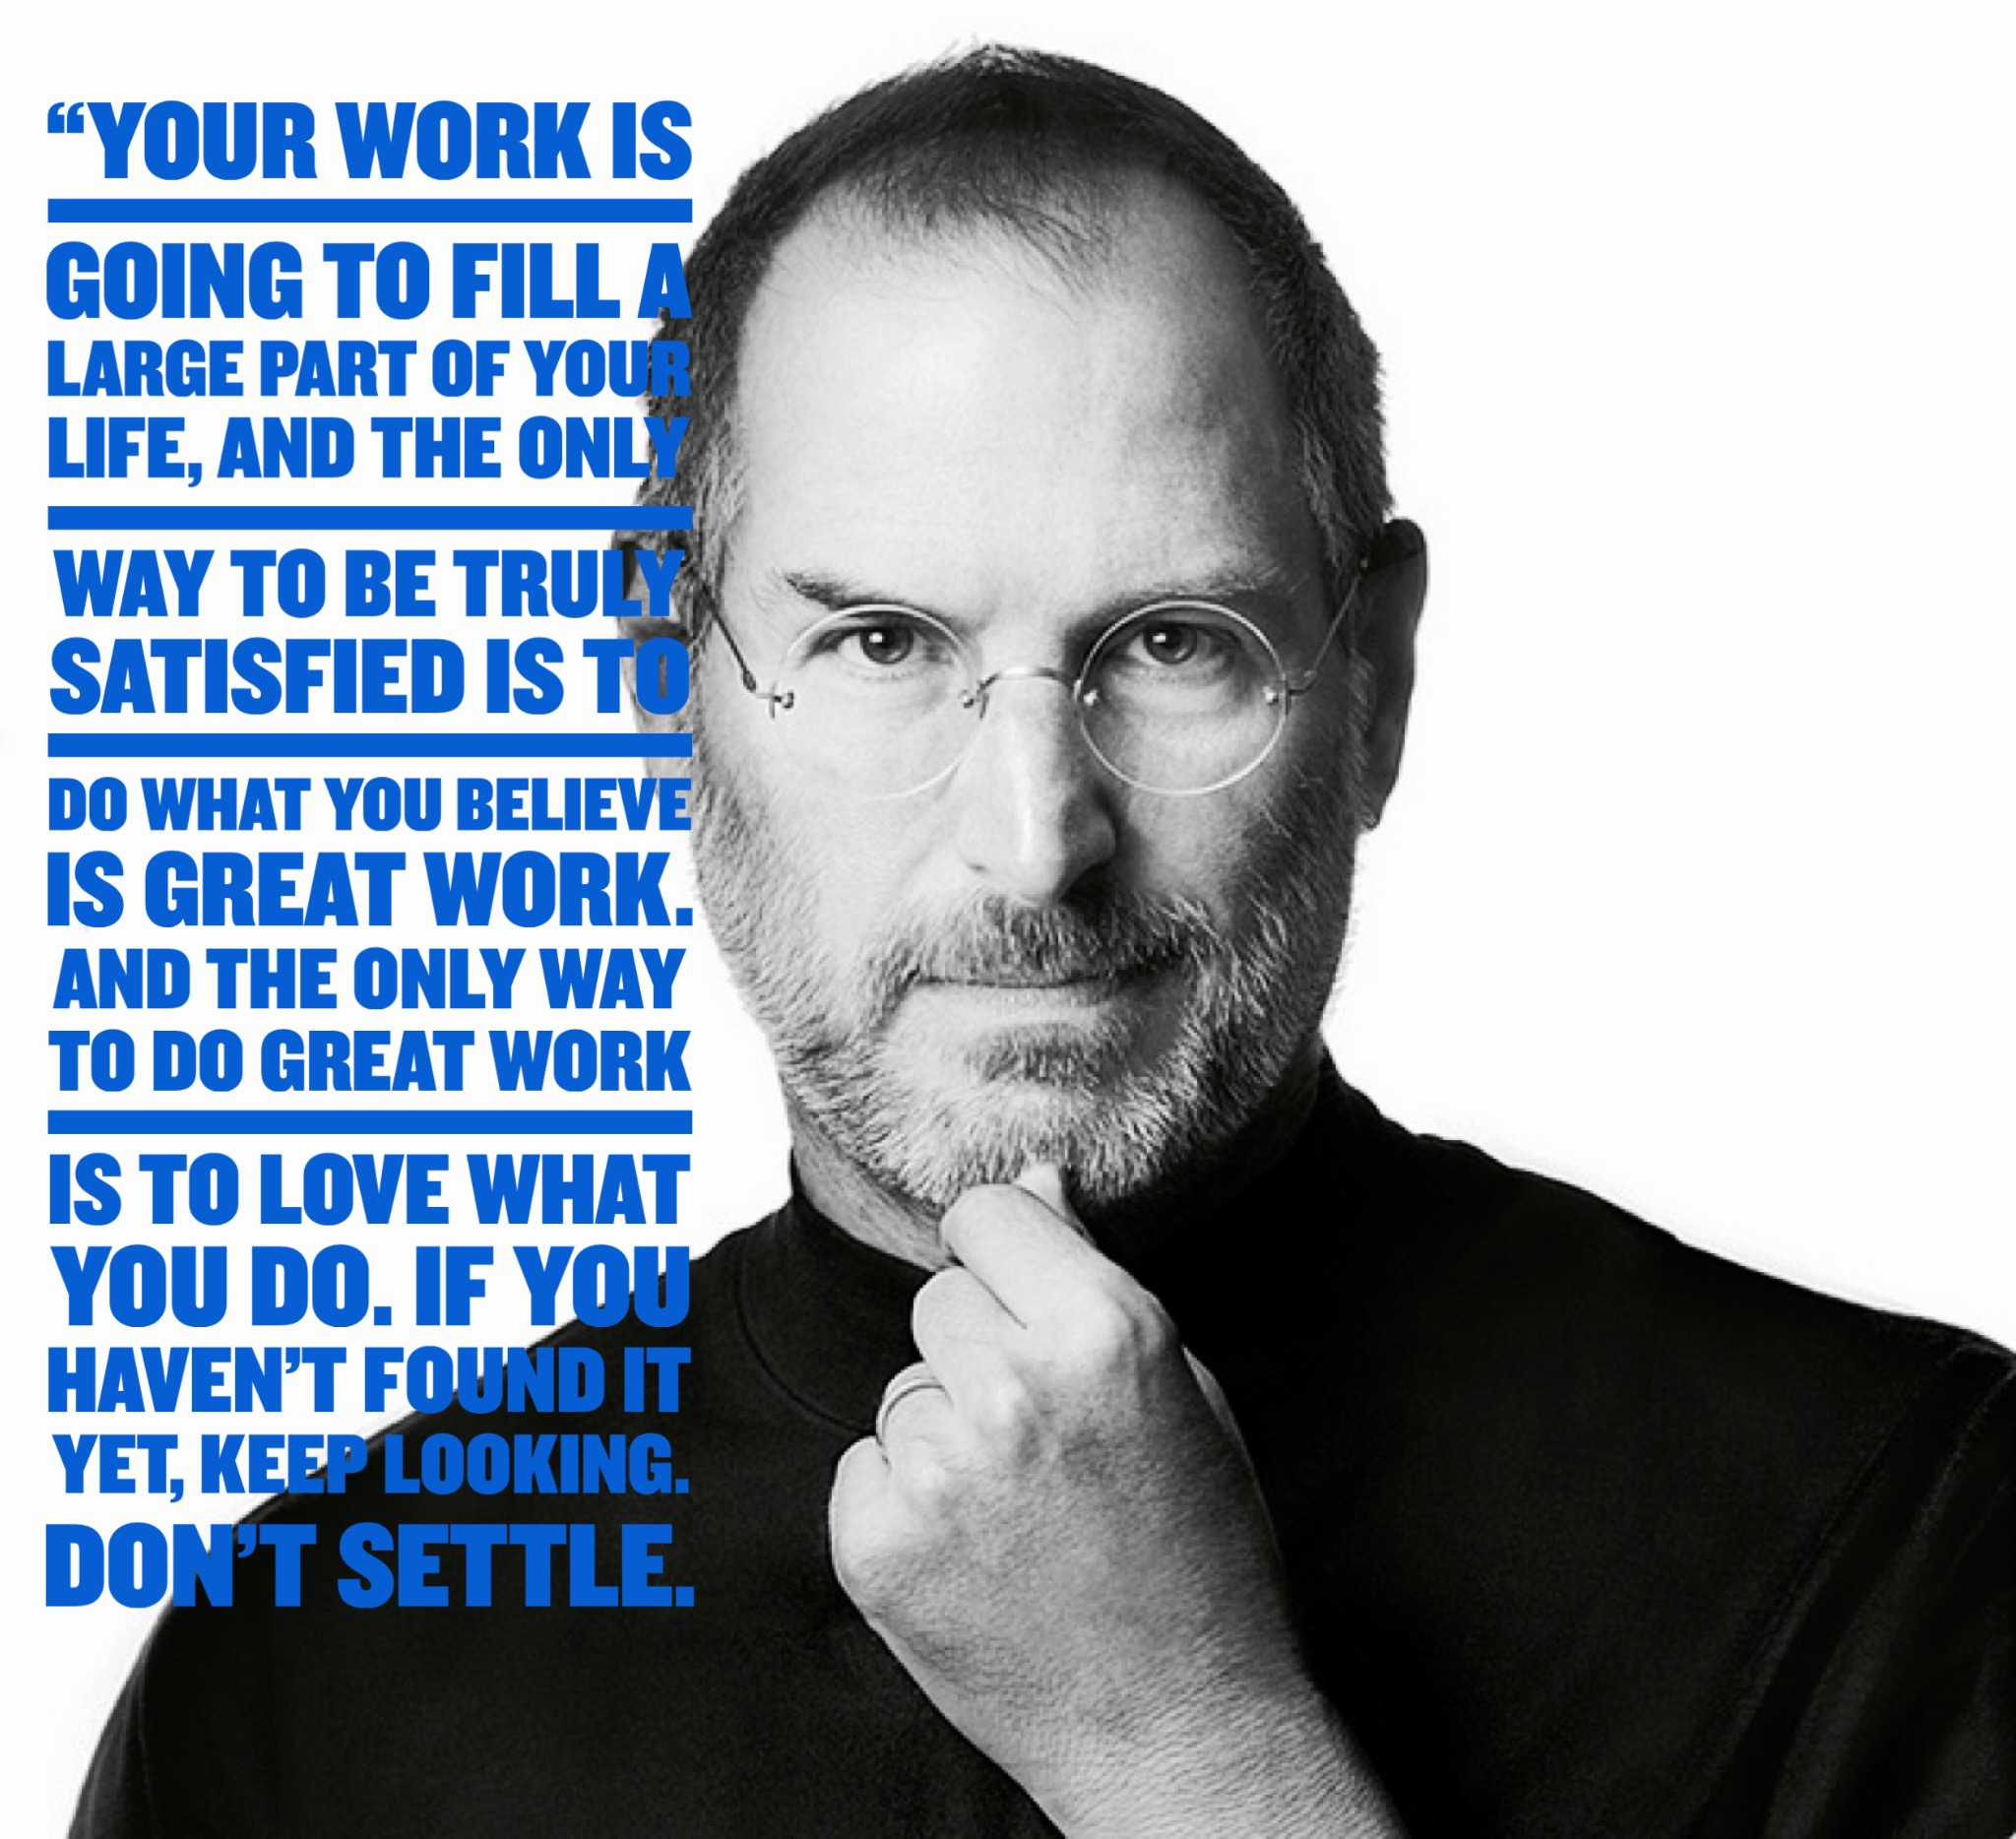 Steve Jobs Quotes On Life The 20 Best Steve Jobs Quotes On Leadership Life And Innovation